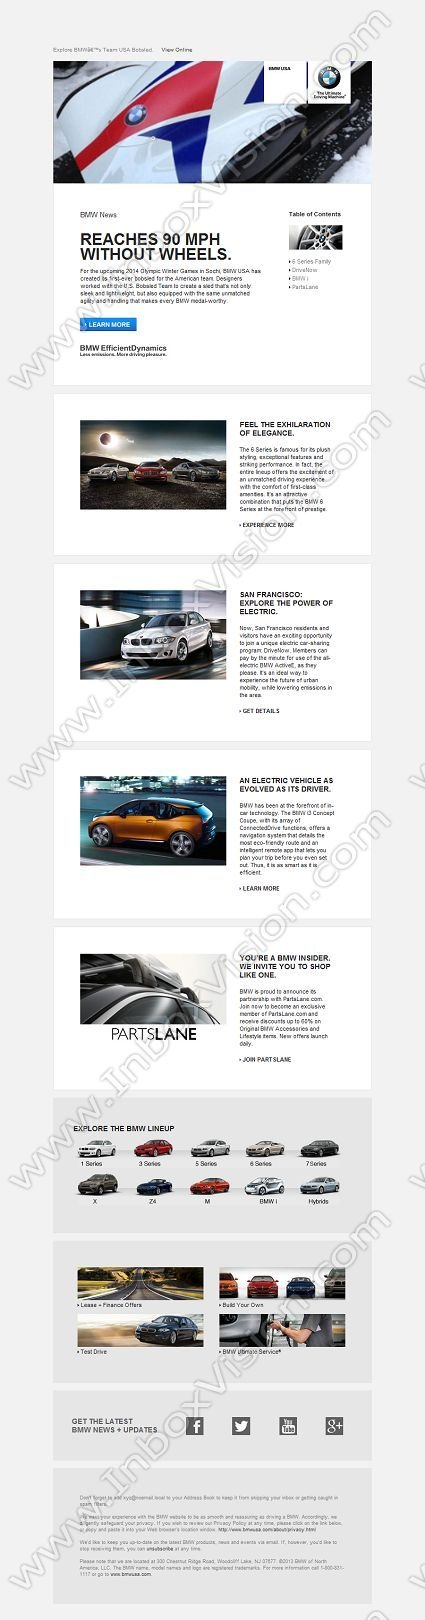 BMW inspirational email design